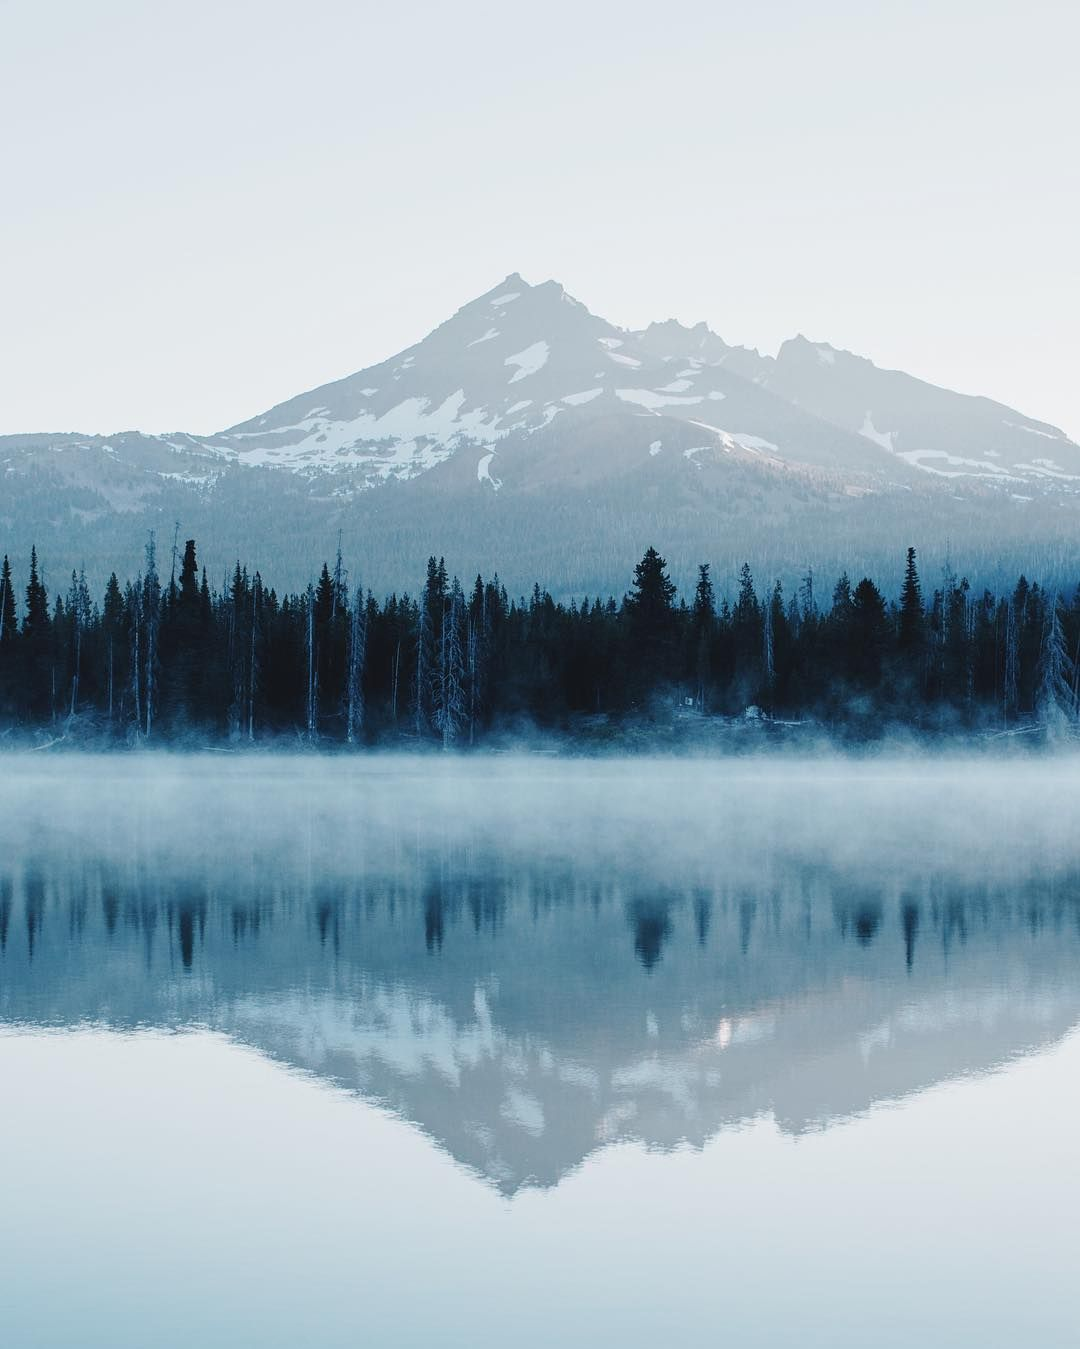 Travel Scenery: Incredible Travel Photography By Henry Nathan